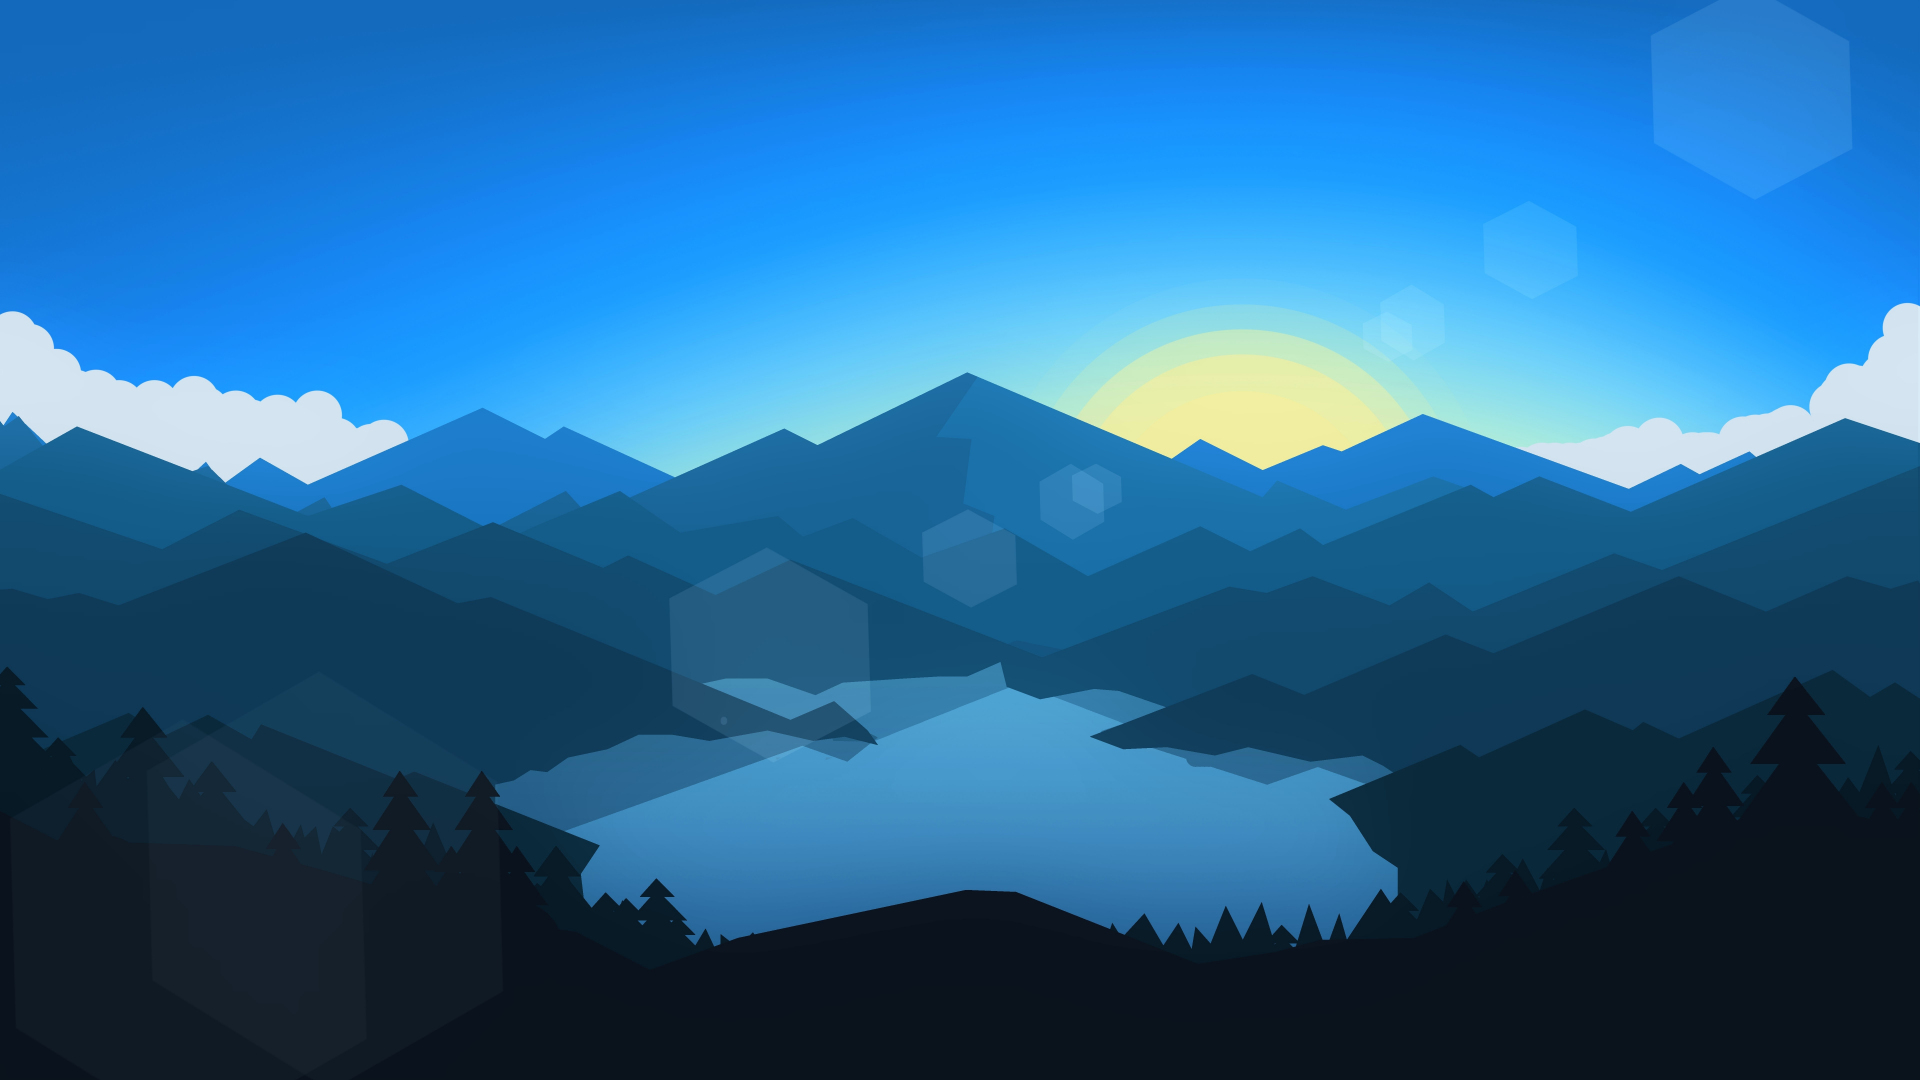 Wallpaper 4k Samsung Galaxy S8 Girls Download 1920x1080 Wallpaper Forest Mountains Sunset